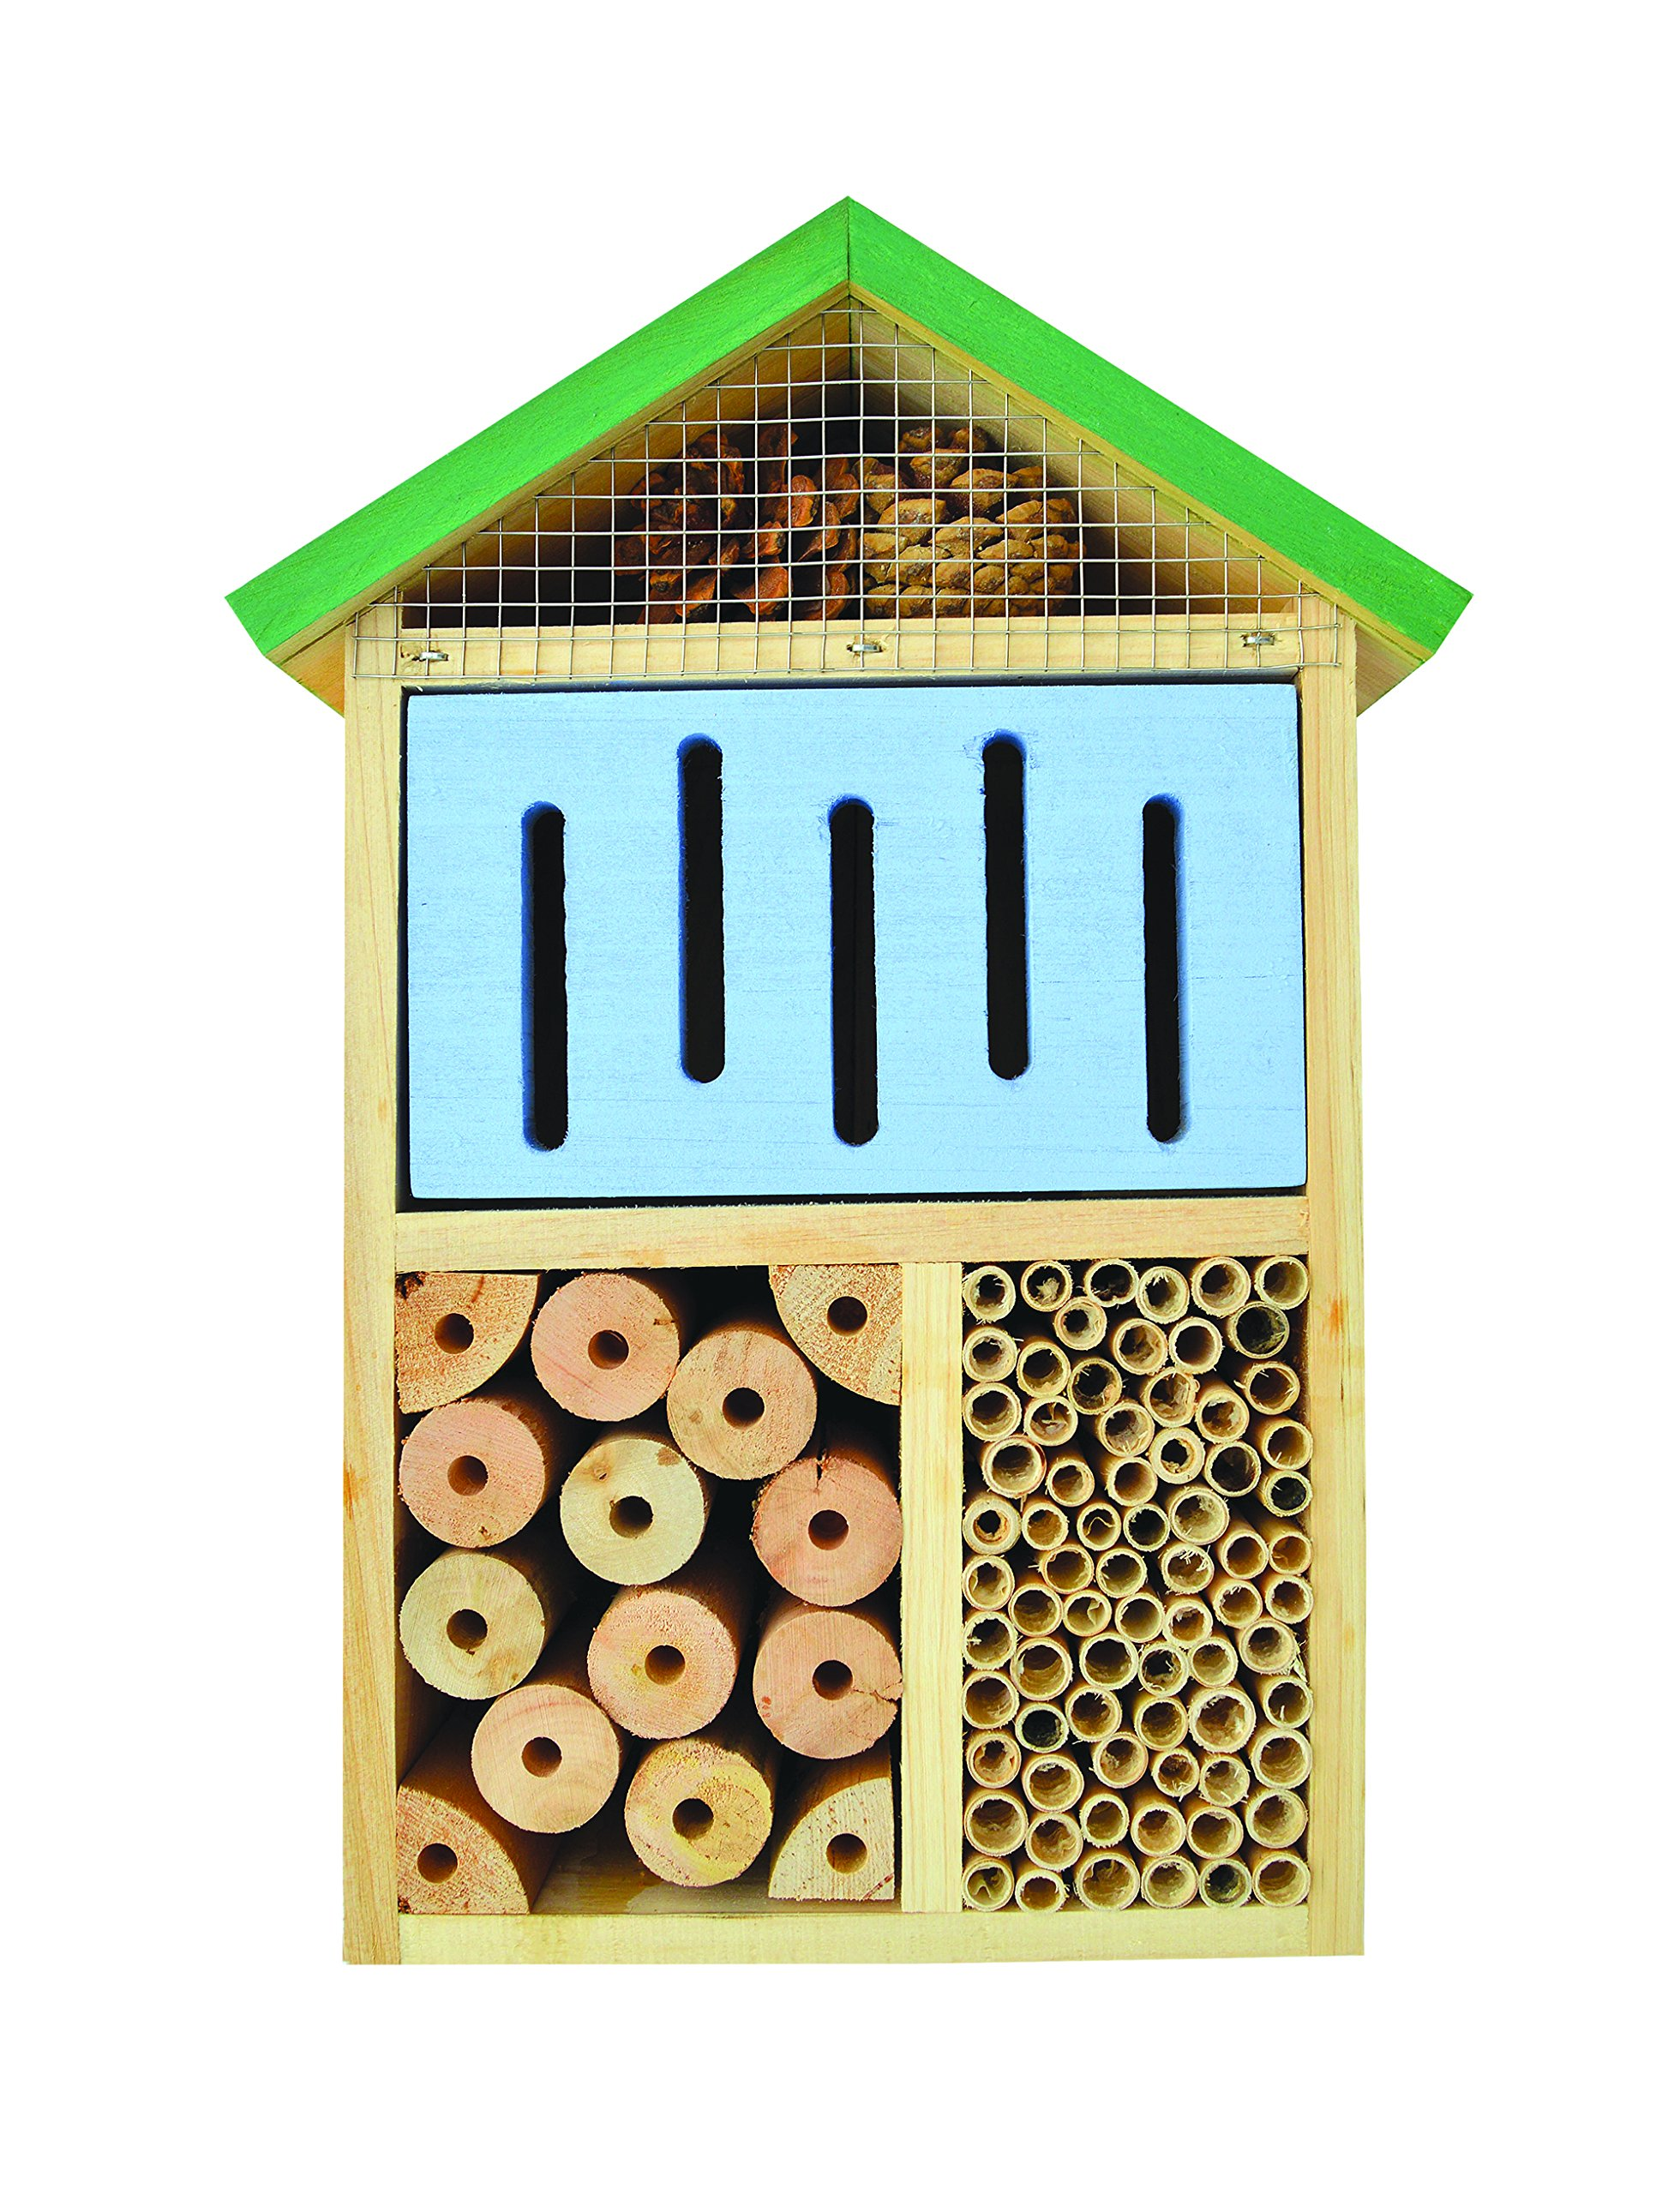 Nature's Way Bird Products CWH7 Better Gardens Beneficial Insect House, 4 Chamber by Nature's Way Bird Products (Image #1)